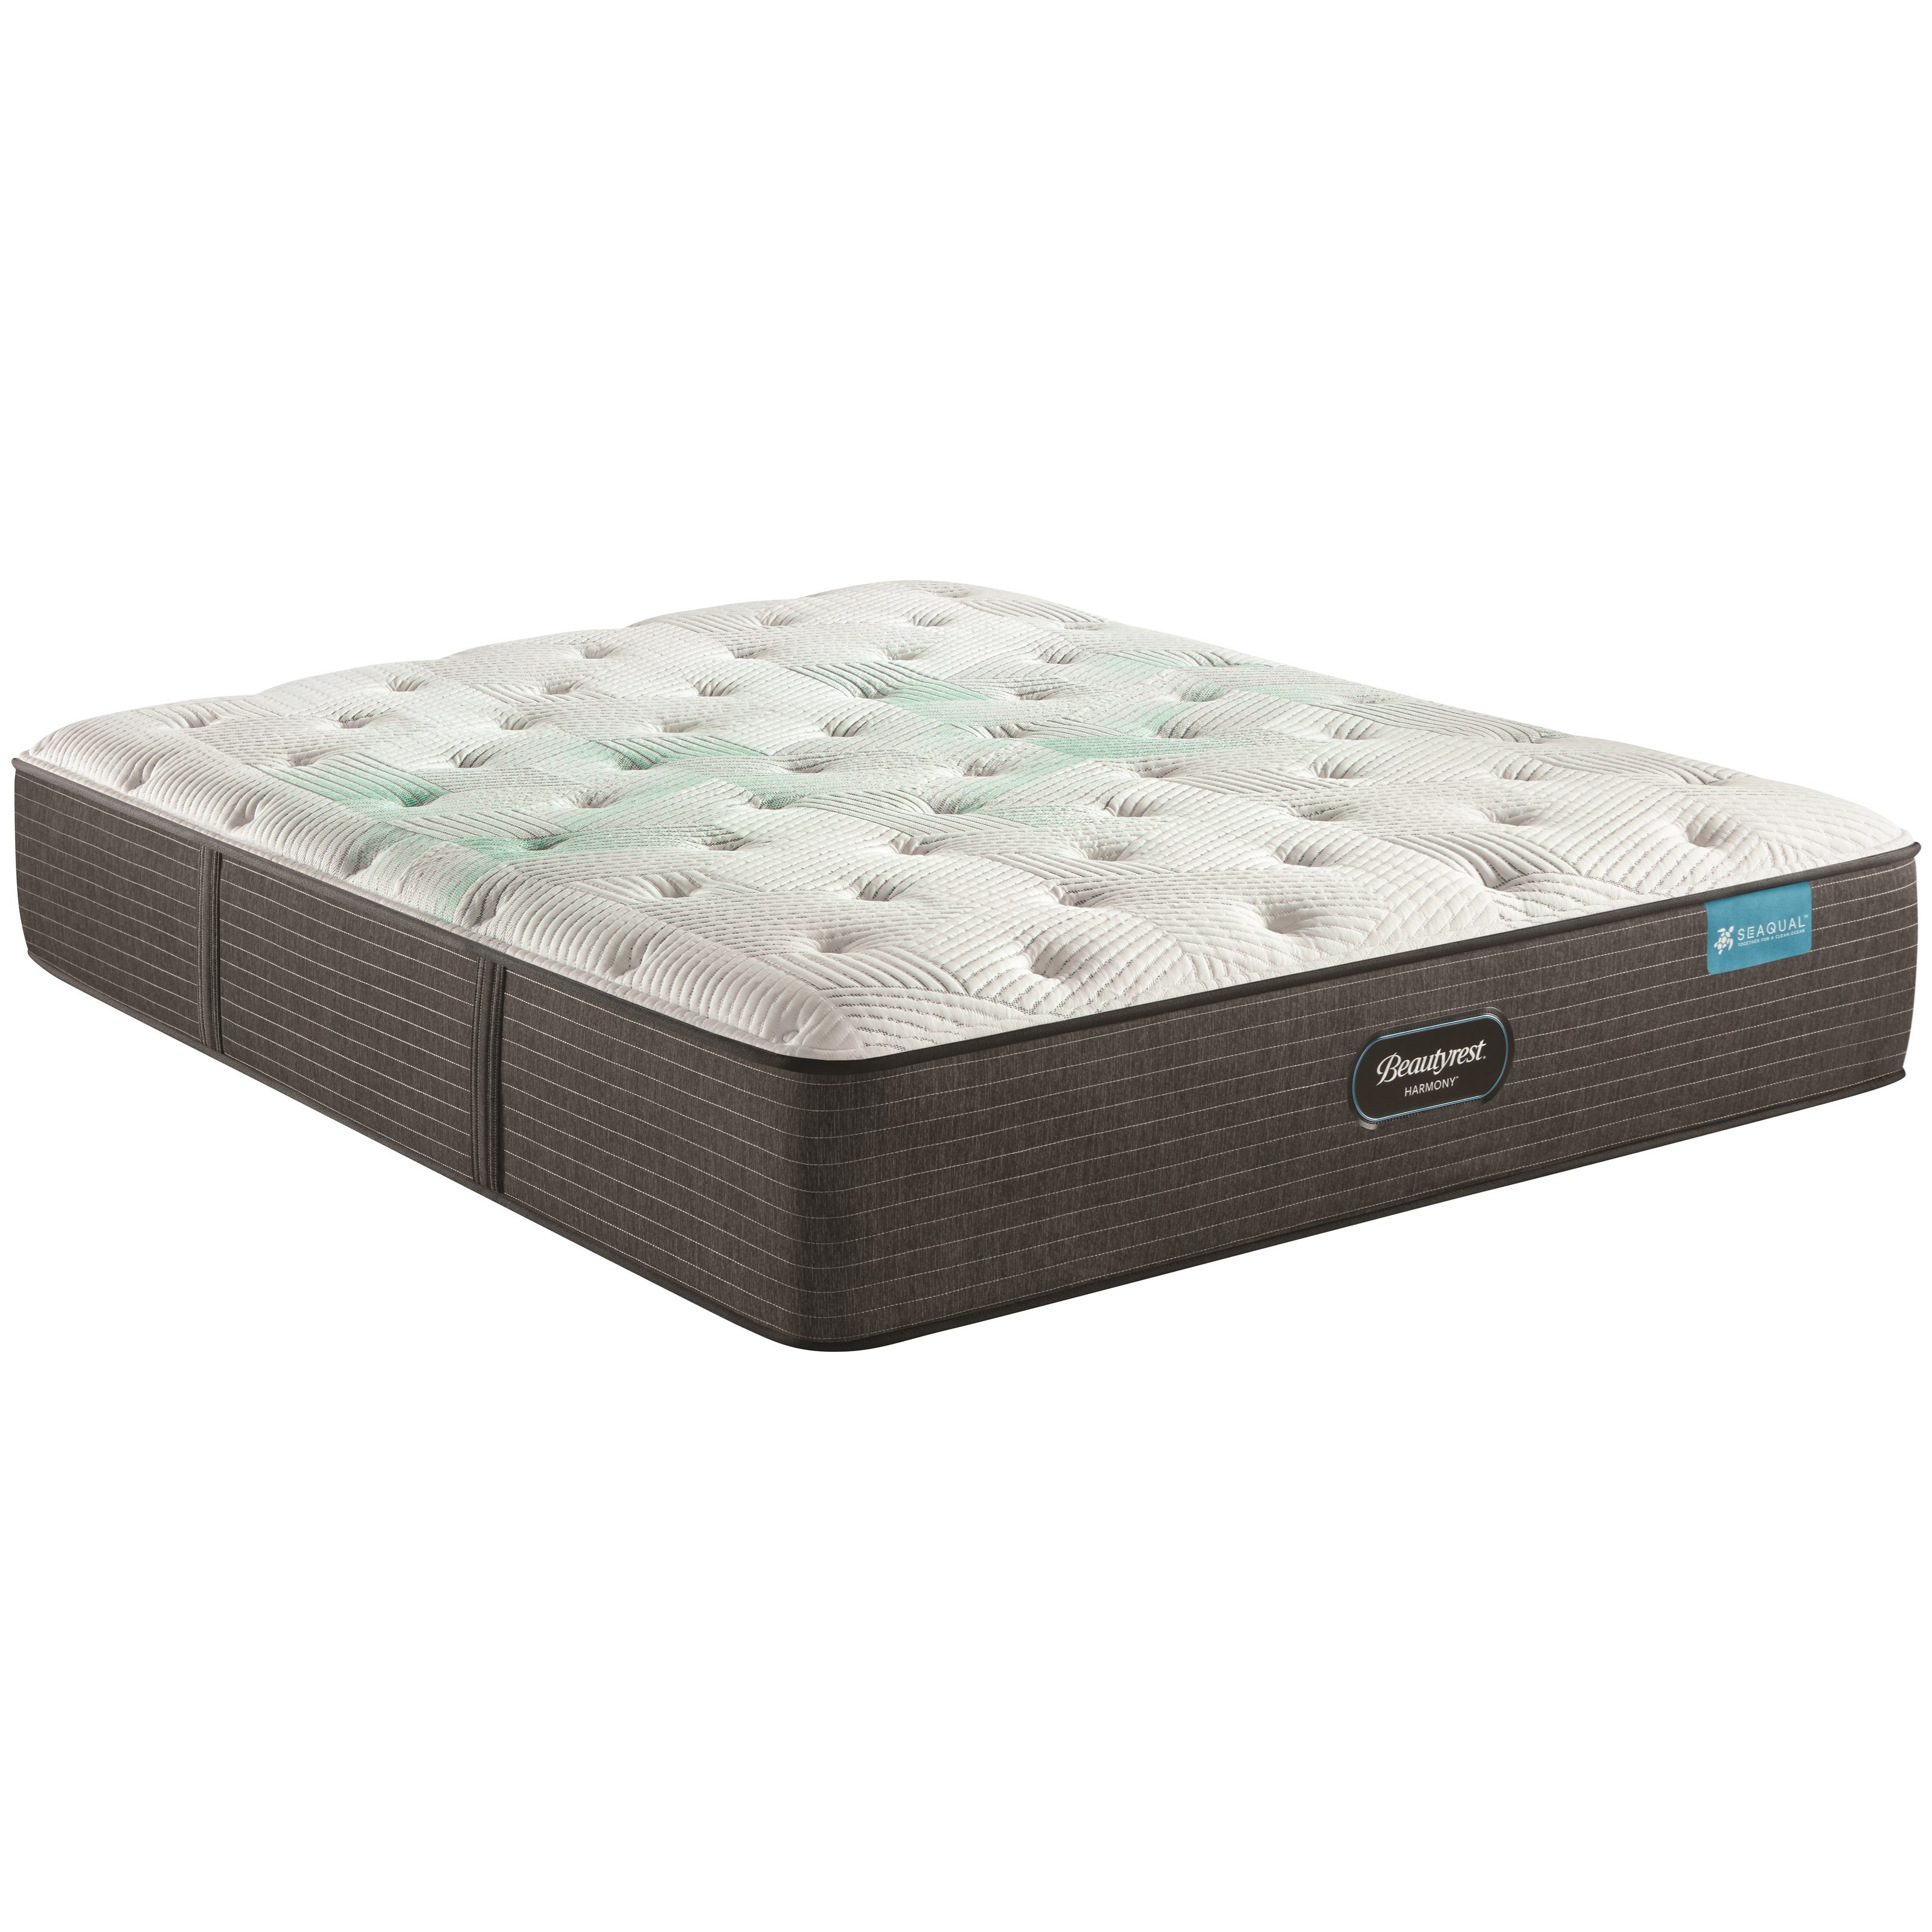 "Harmony Hadley Series Full 13 1/2"" Plush Mattress by Beautyrest at Rotmans"